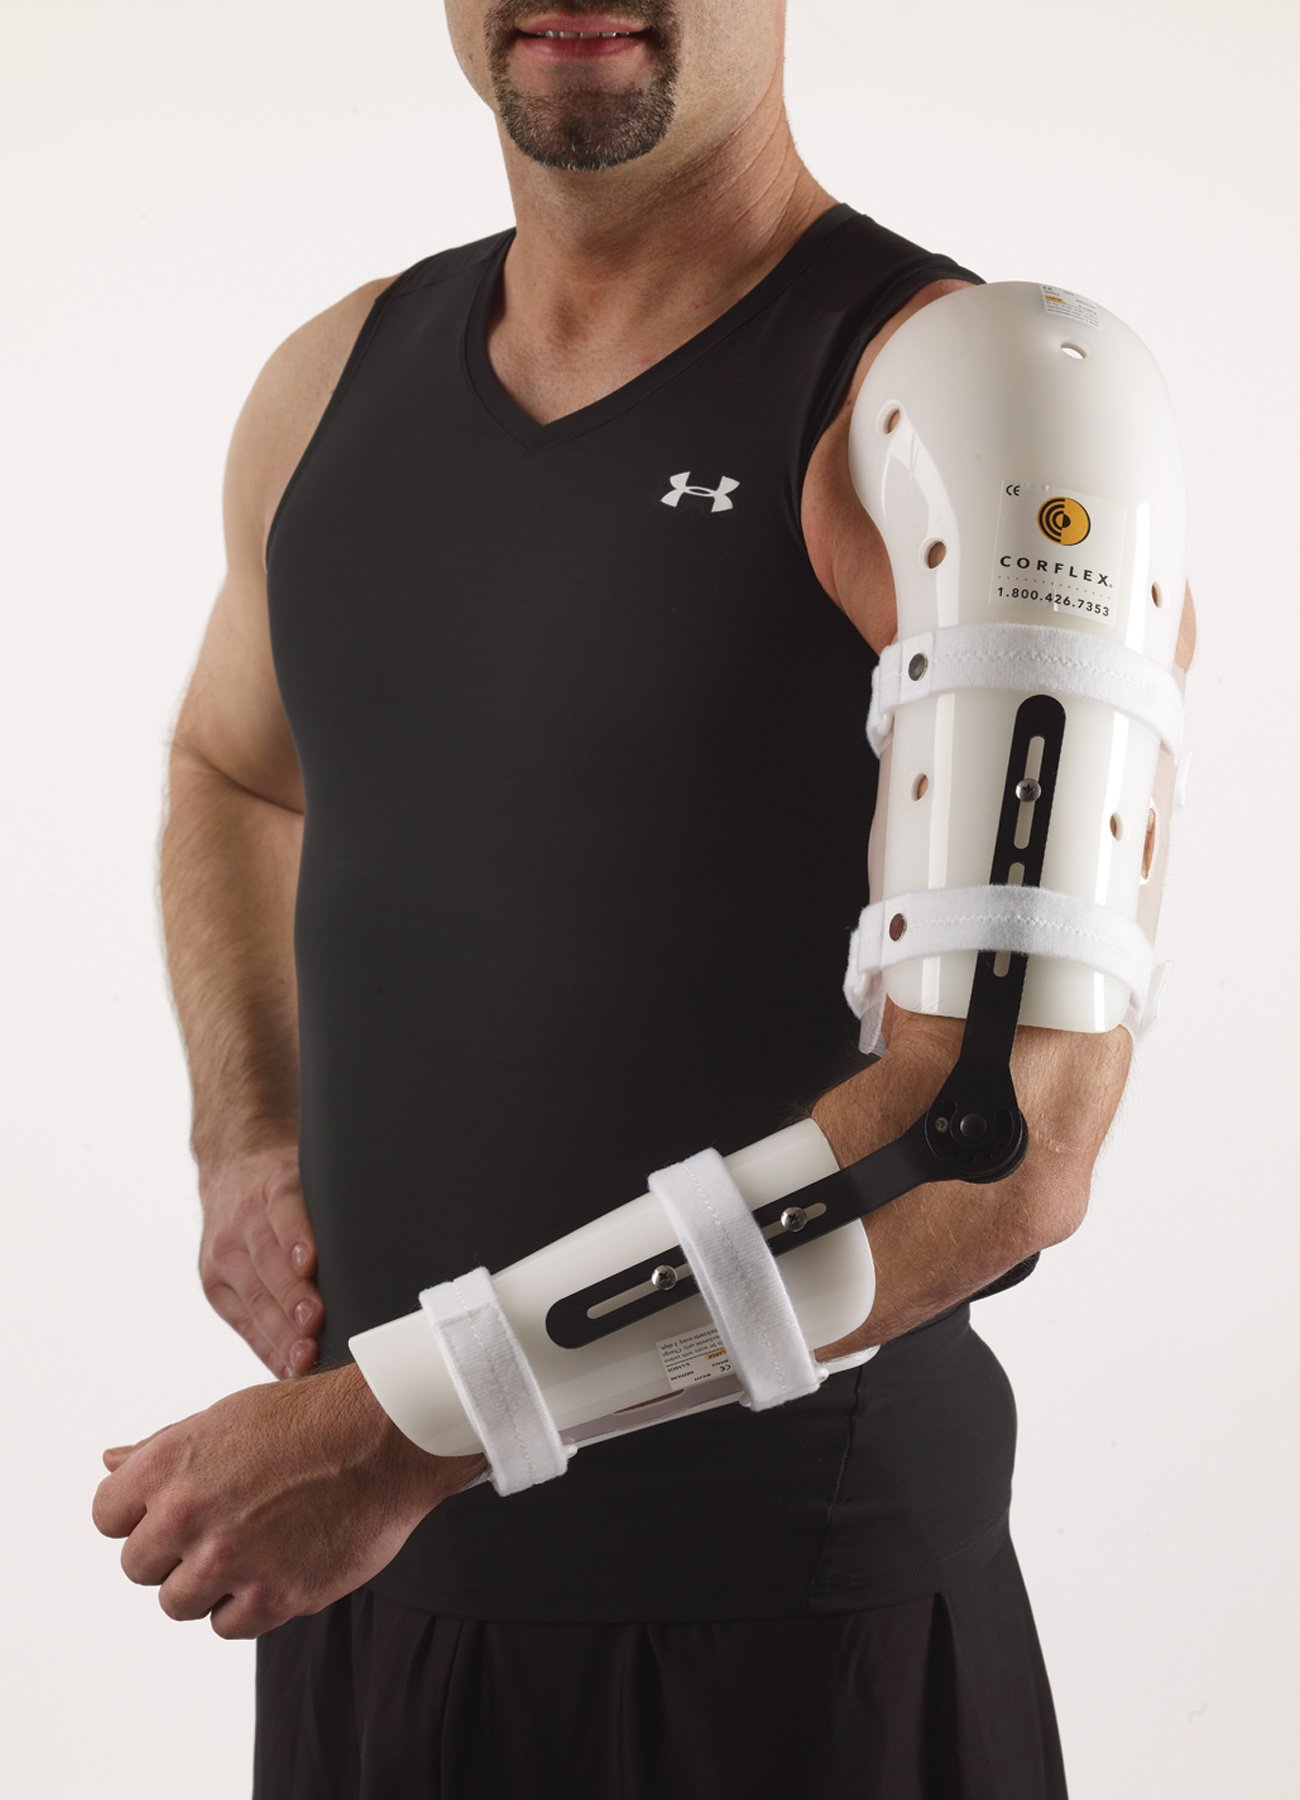 Corflex ElBOW ORTHOSIS WITH R.O.M. HINGE MED/Left Humeral Prox. 11-13'', Ulnar Prox. 9-11''